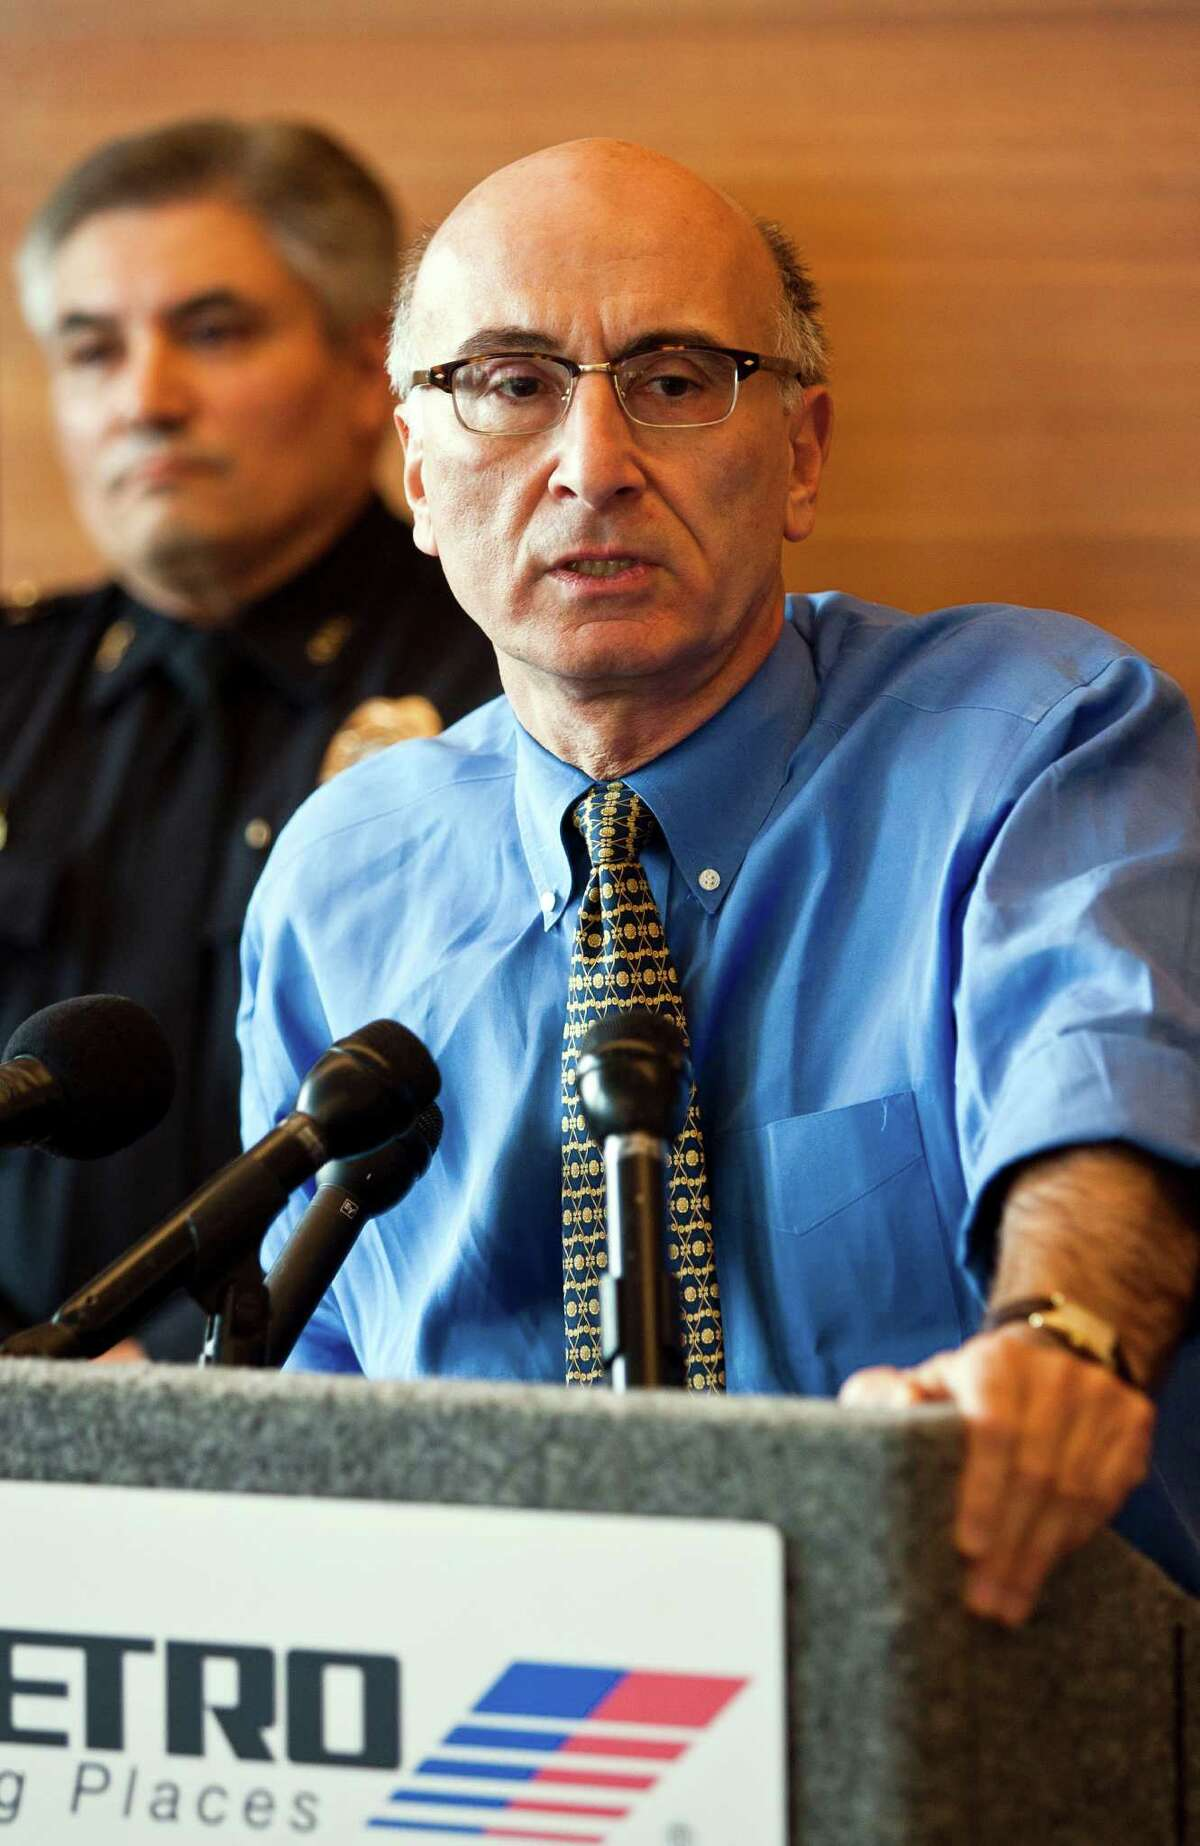 Metro CEO George Greanias speaks at the METRO headquarters regarding the death of bus driver David Sayers on Thursday, June 23, 2011 in Houston. ( Patrick T. Fallon / Houston Chronicle )